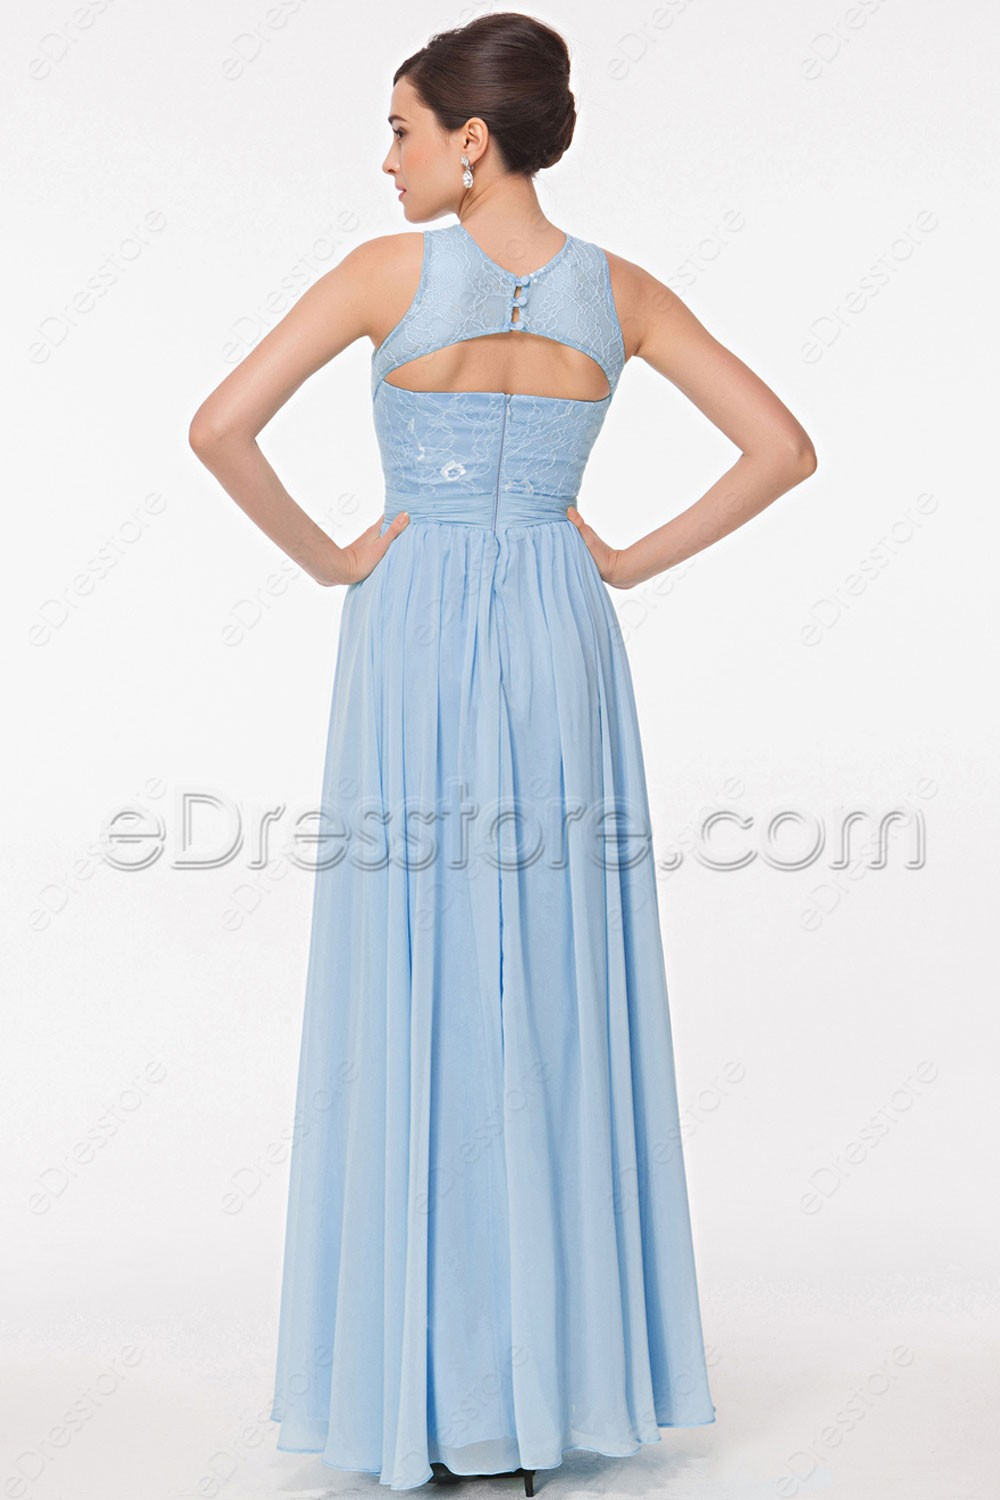 Lace light blue bridesmaid dresses key hole back this is a made to order item in order to get a better fit lease take your measurements around bust waist and hip and choose your size from our size ombrellifo Images